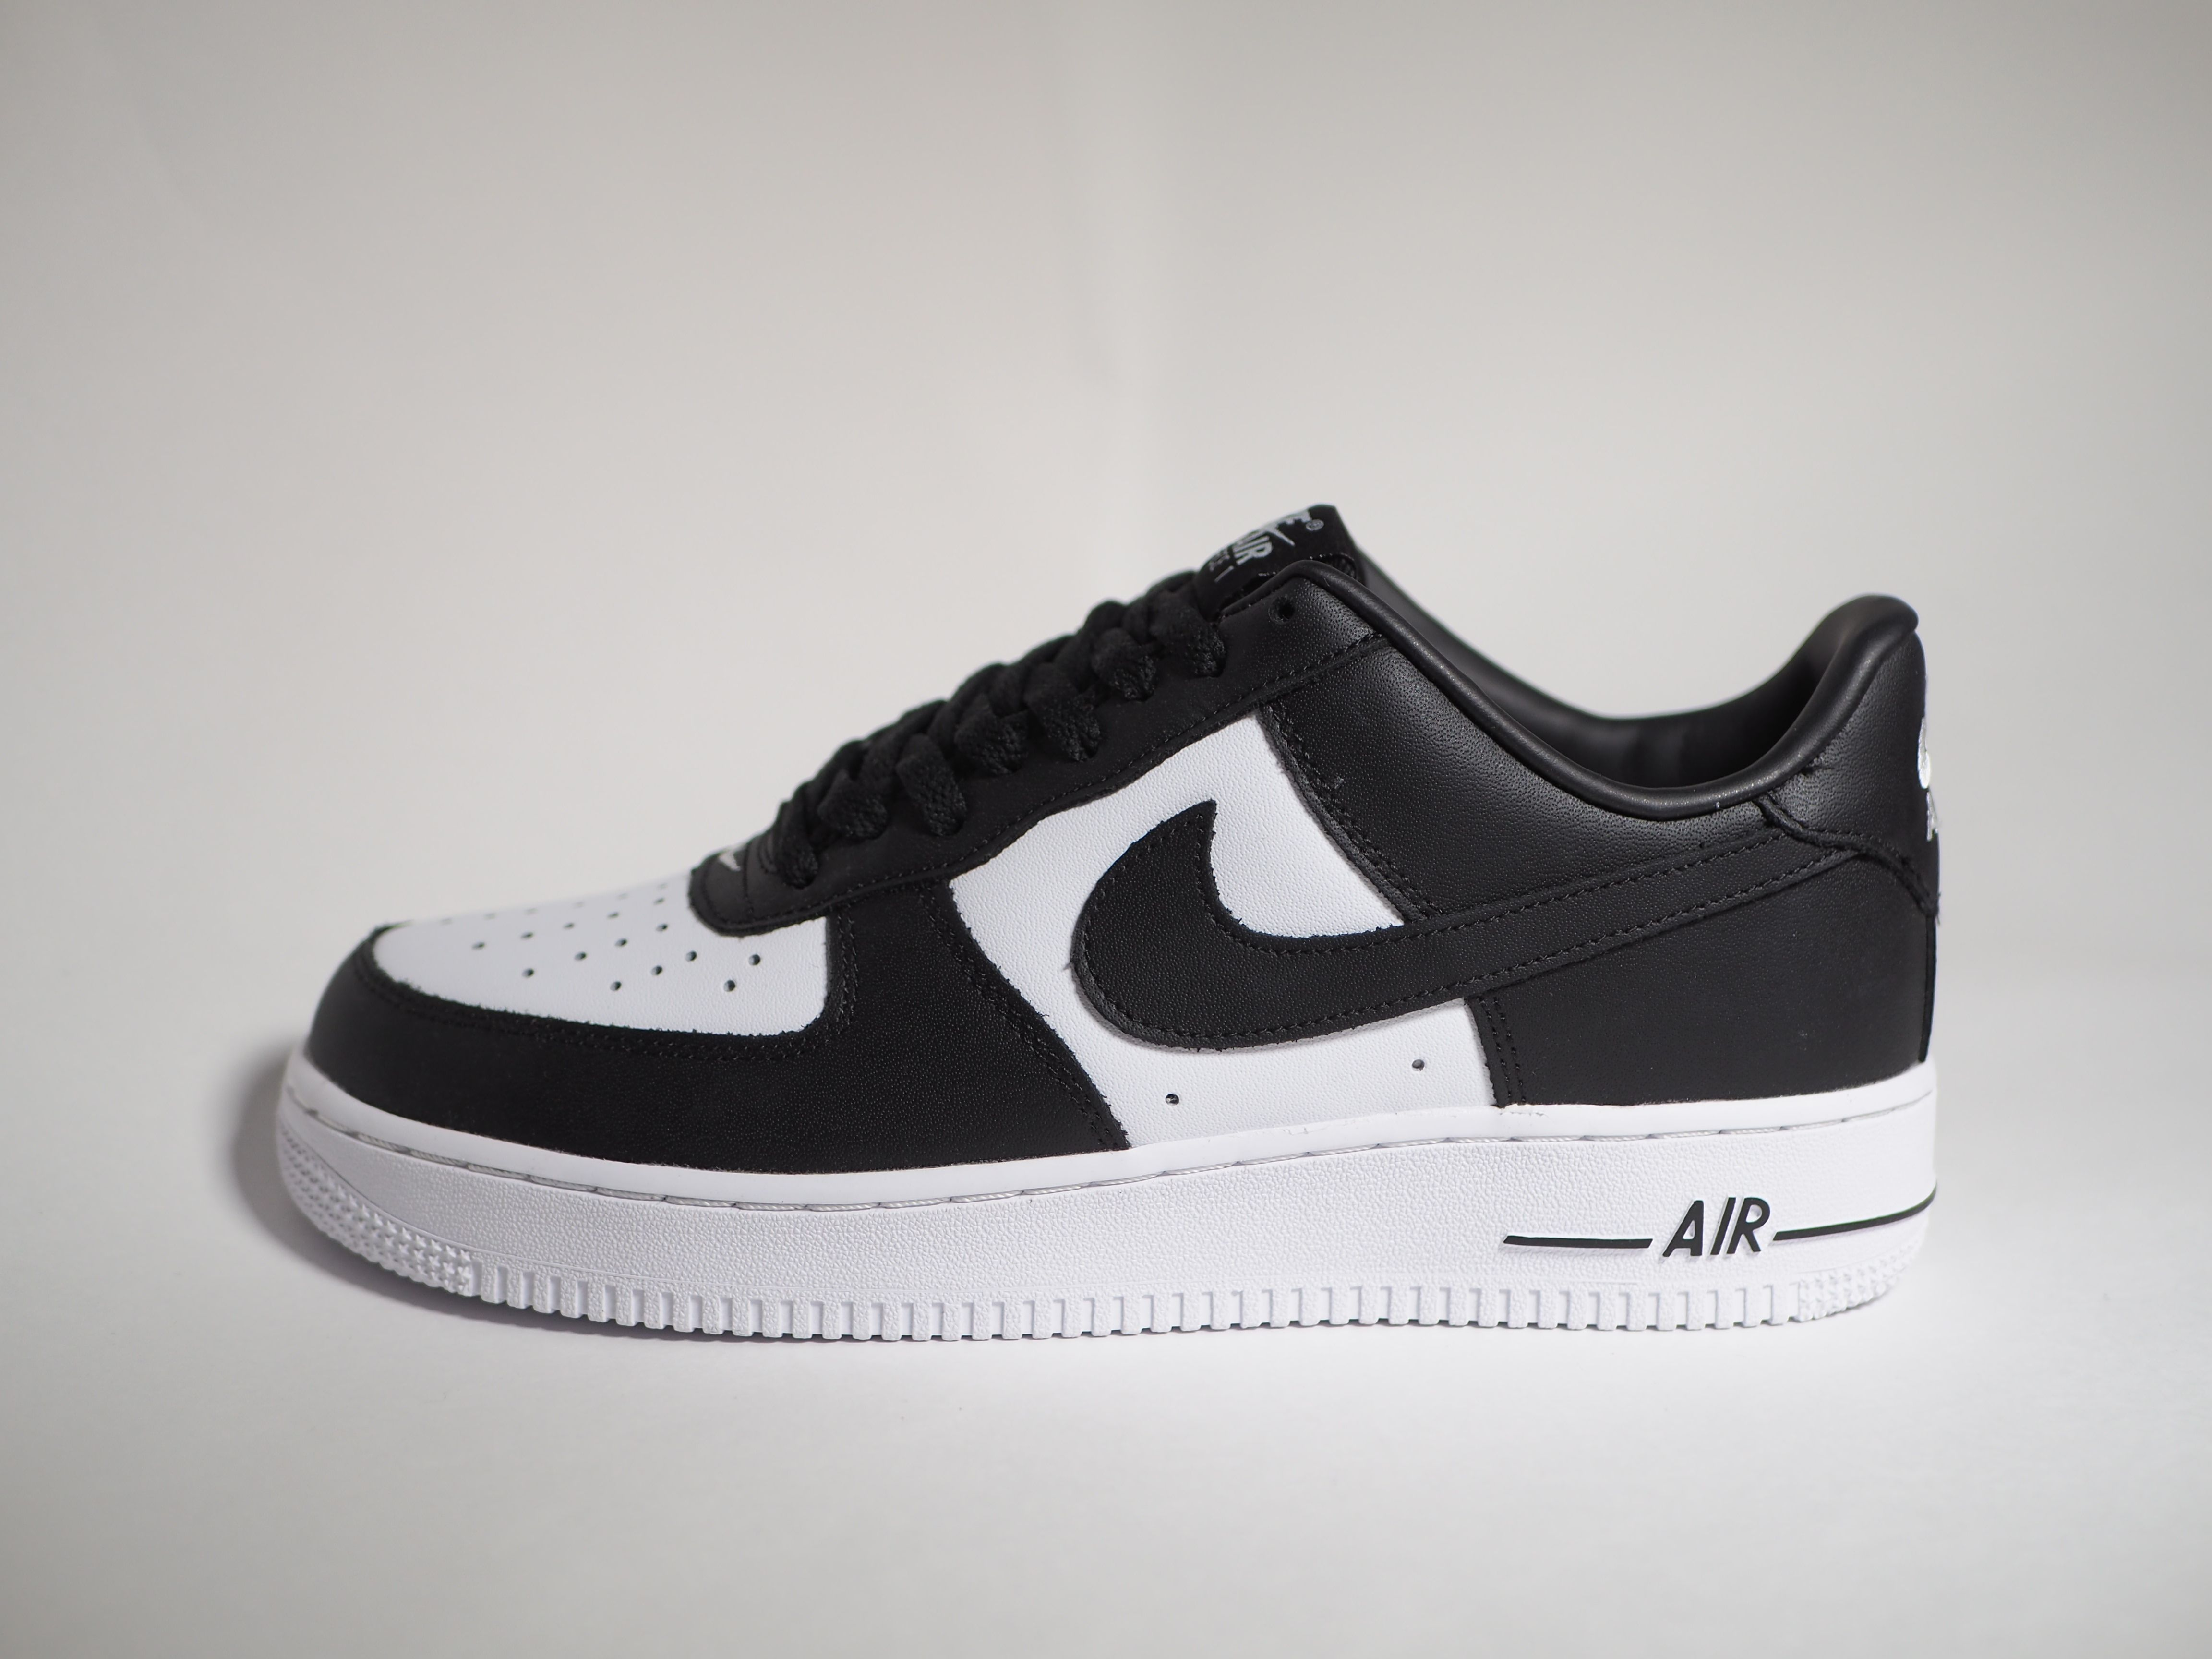 Nike Air Force 1'07 AQ4134 100 в магазине ike.by